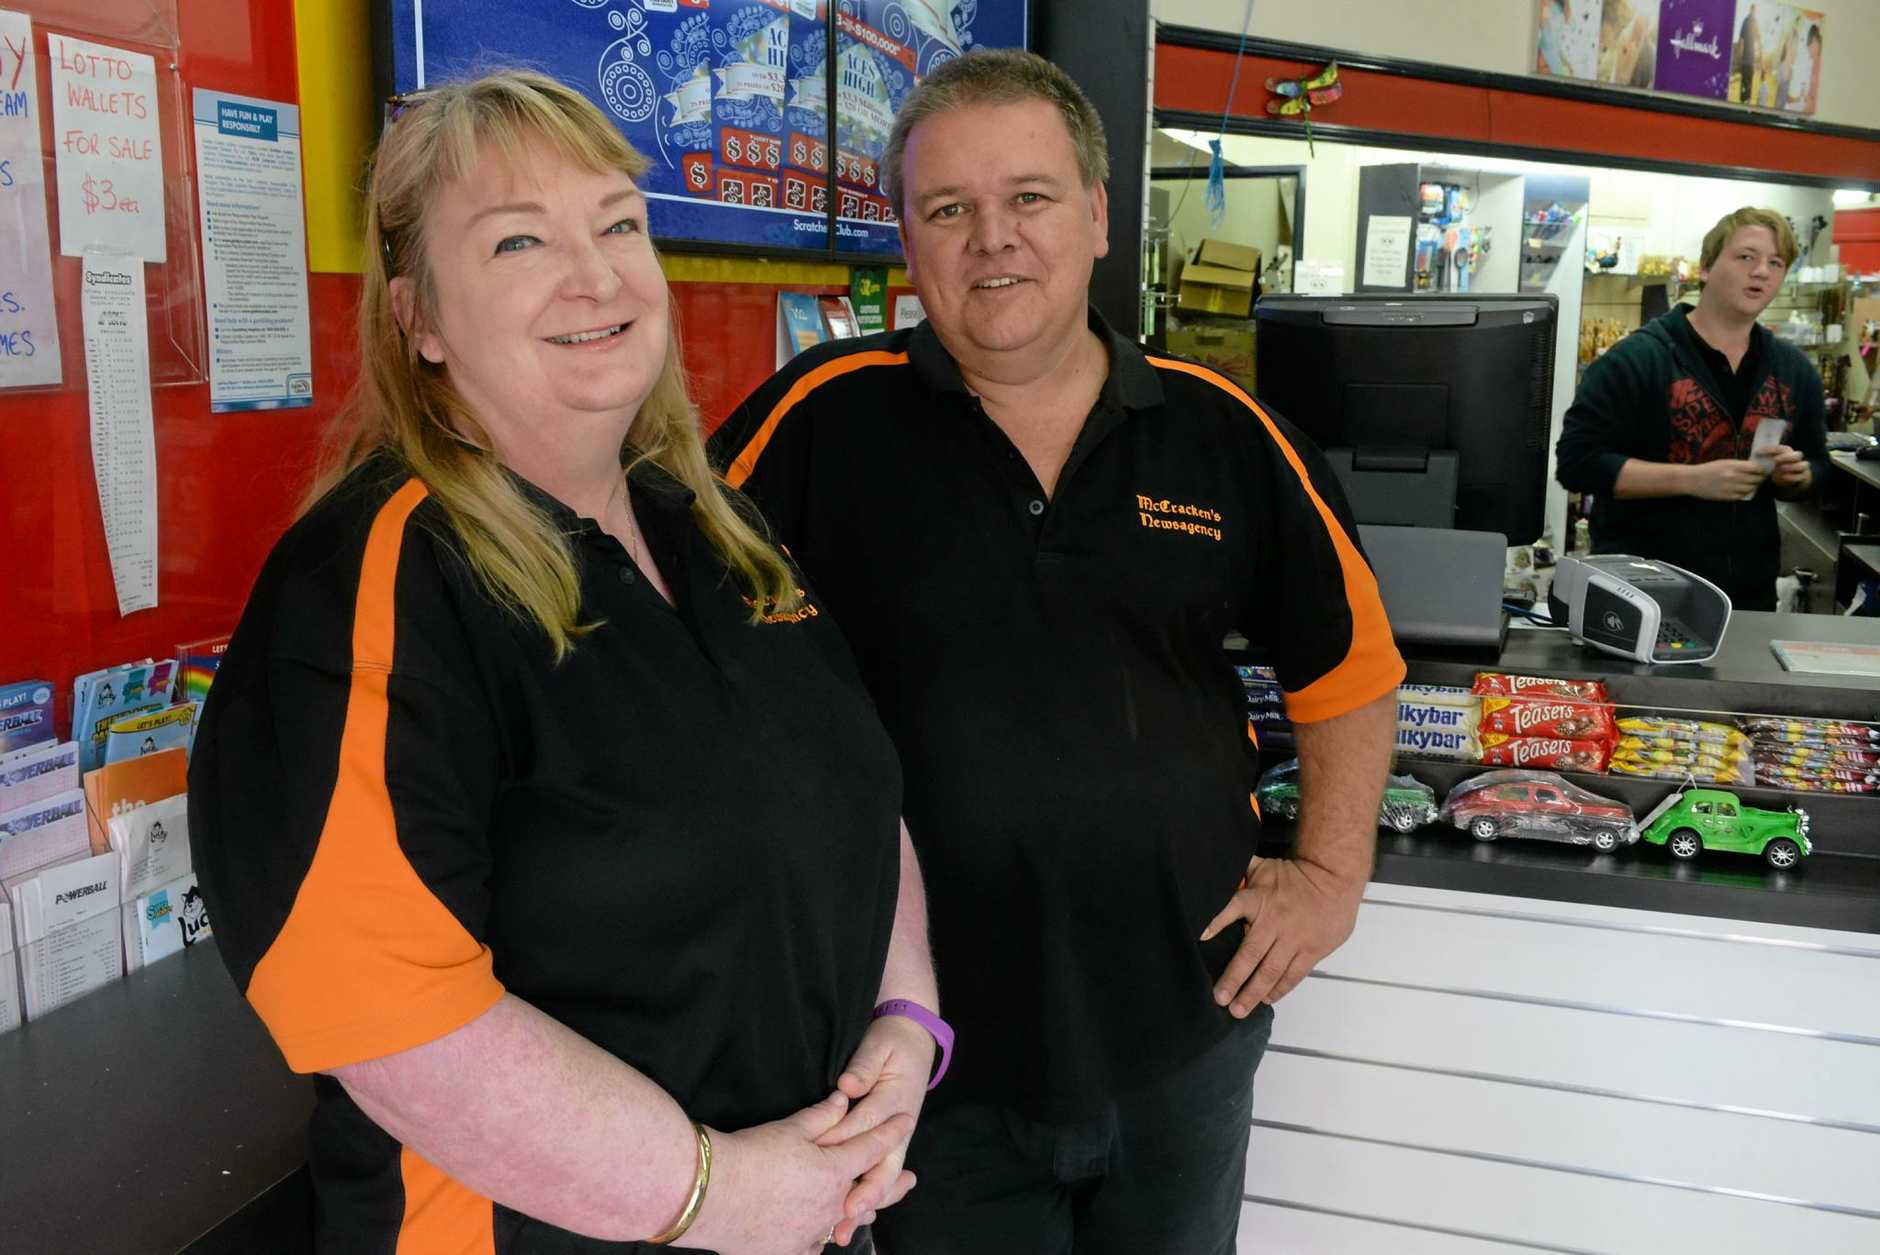 FACES OF BUNDY: Michael and Lyn Bowles from McCrackens Newsagency.